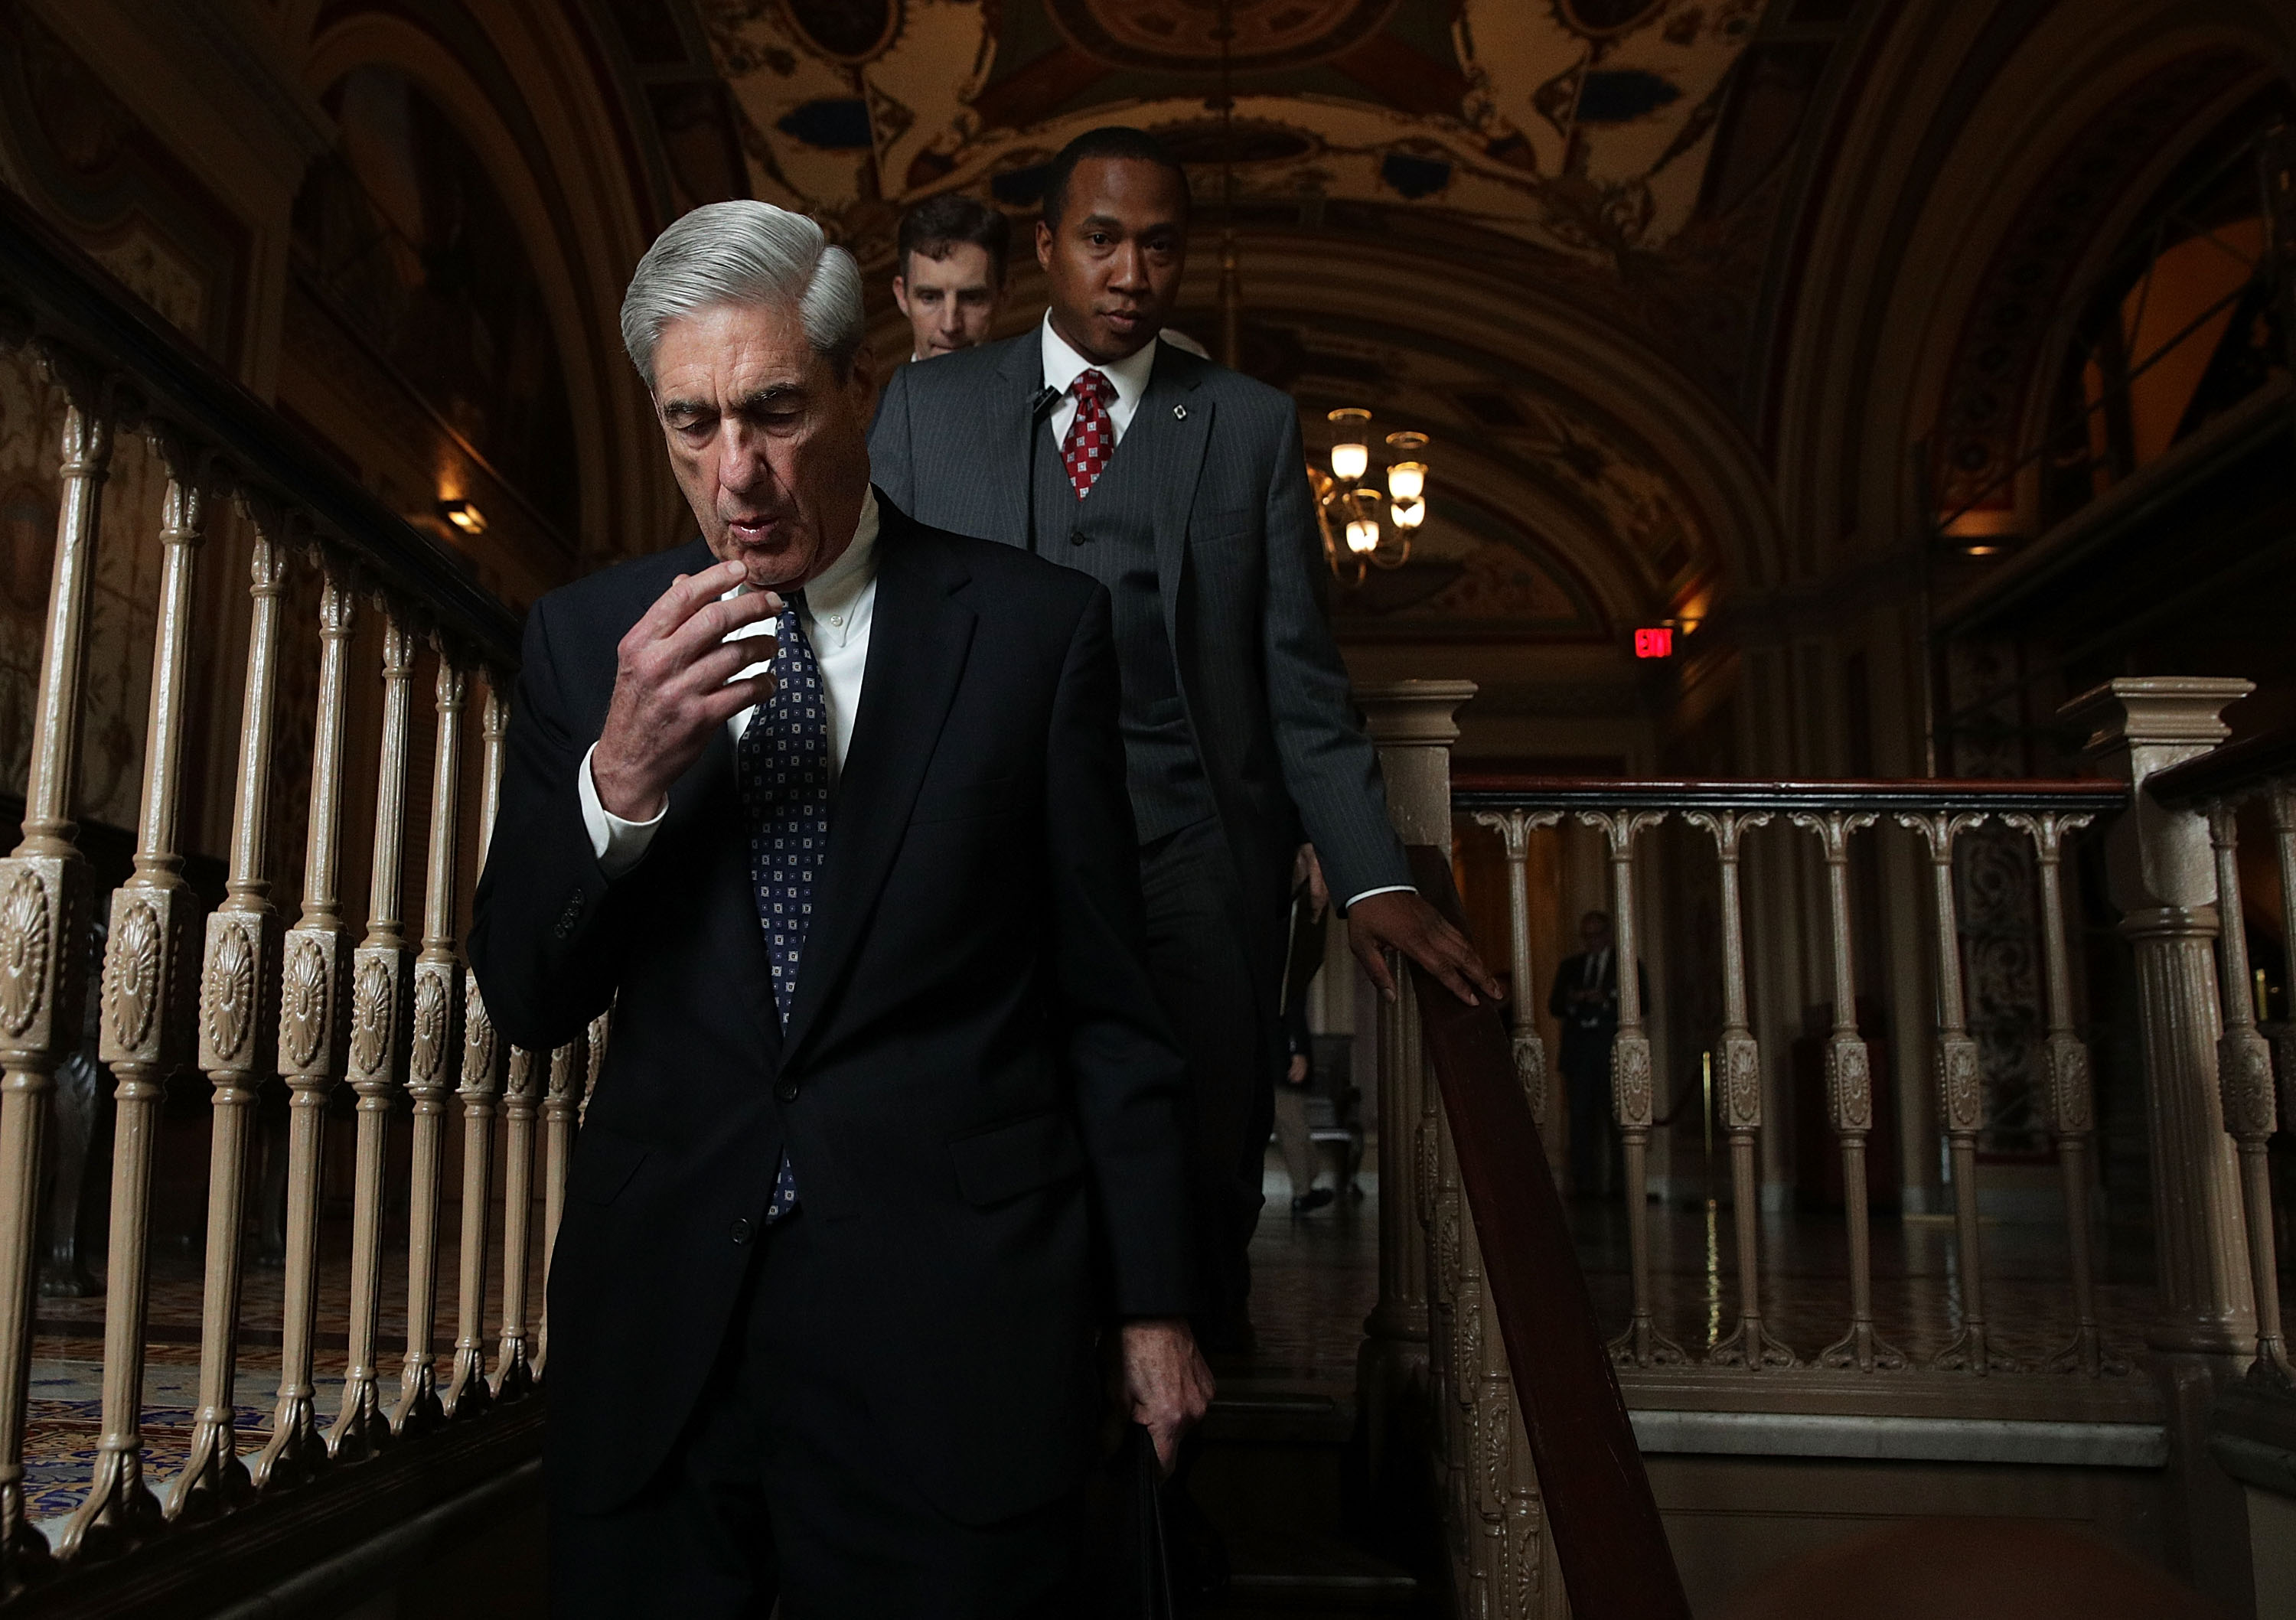 Special counsel Robert Mueller walks down a dark staircase at the US Capitol.